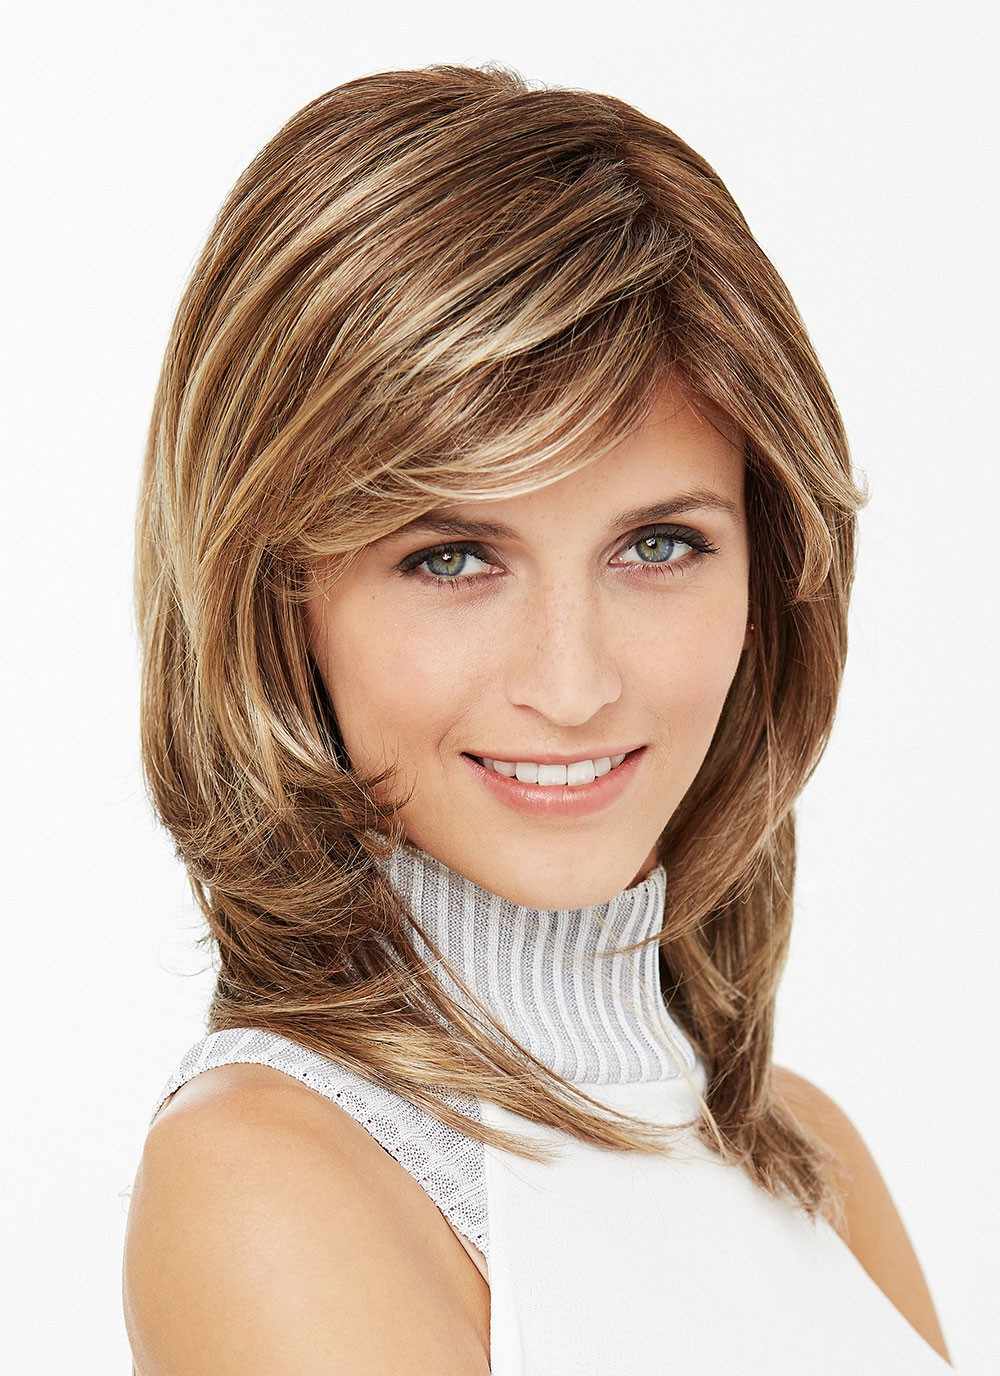 55d4a95ac Shoulder Length Straight Layered Synthetic Hair Wigs with Side Bangs, Best  Wigs Online Sale - Rewigs.com